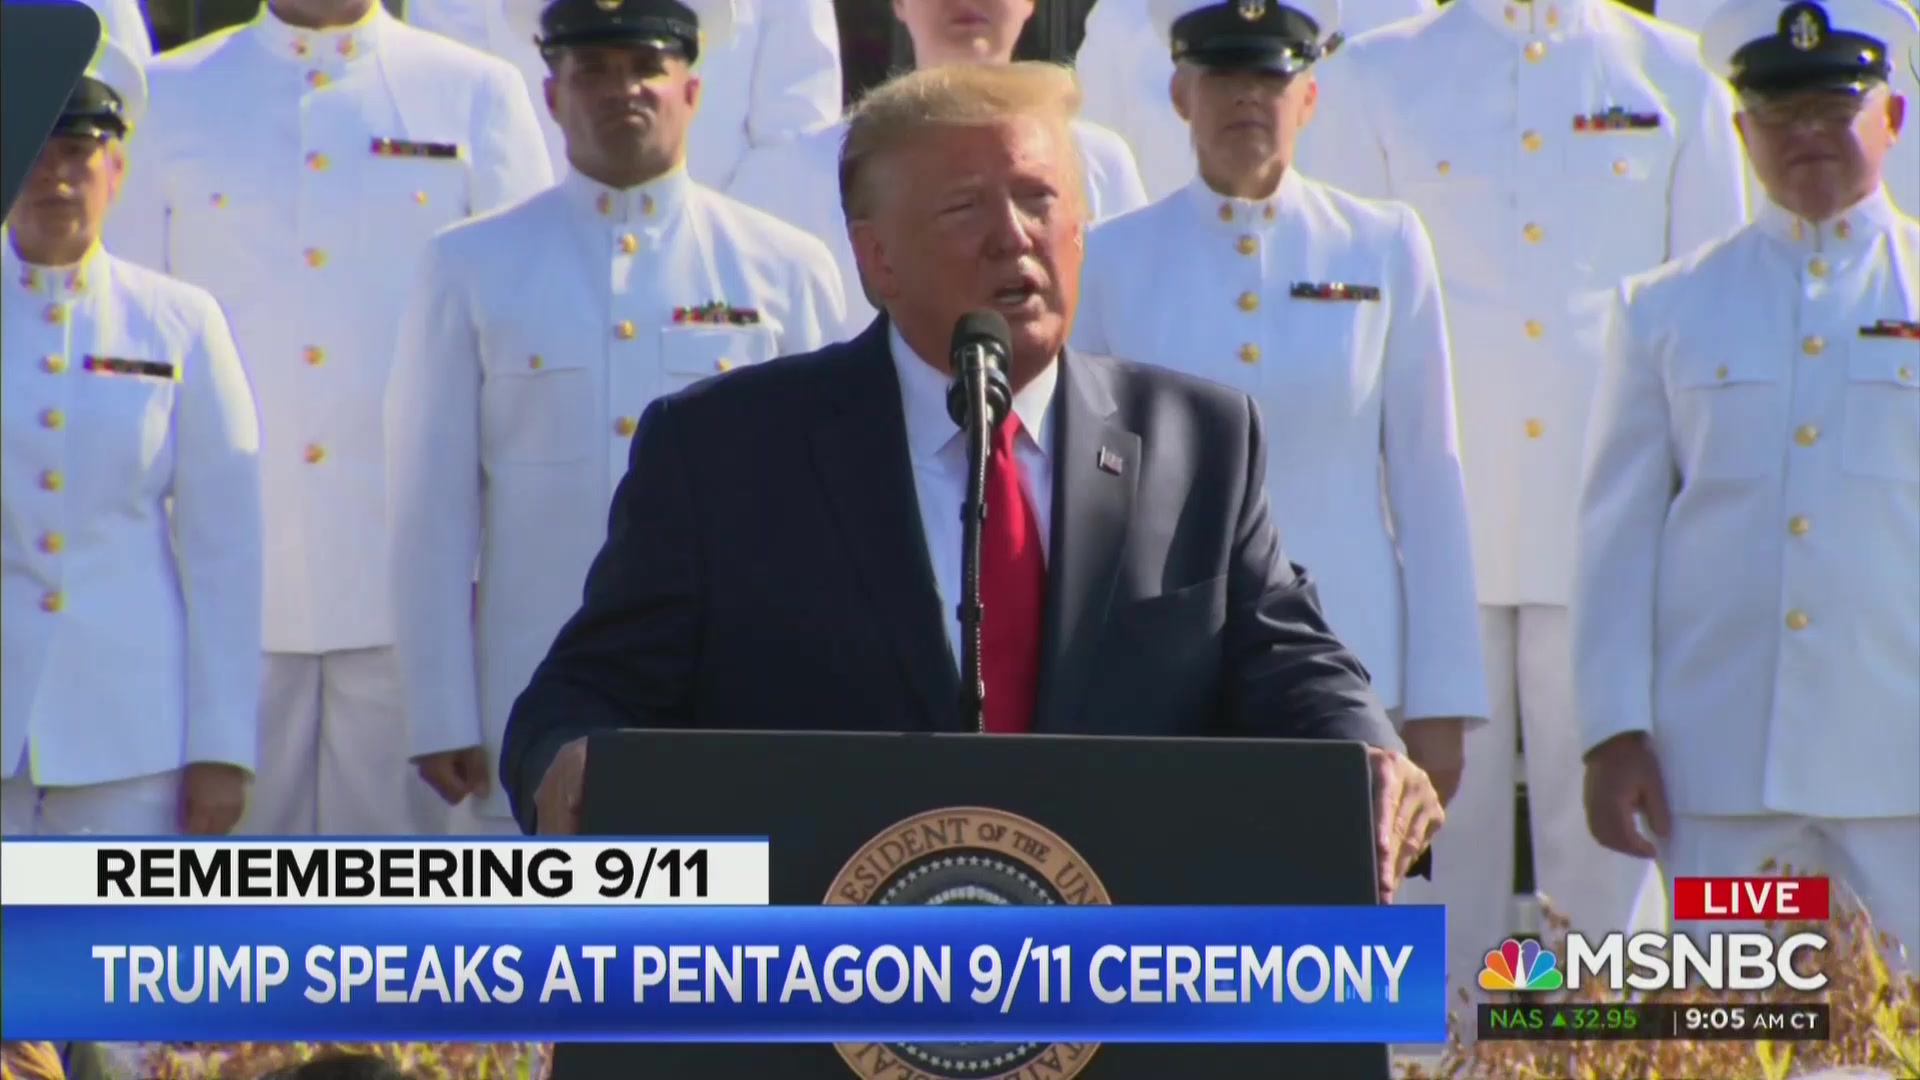 During 9/11 Ceremony, Trump Repeats Baseless Claim He Helped Out at Ground Zero